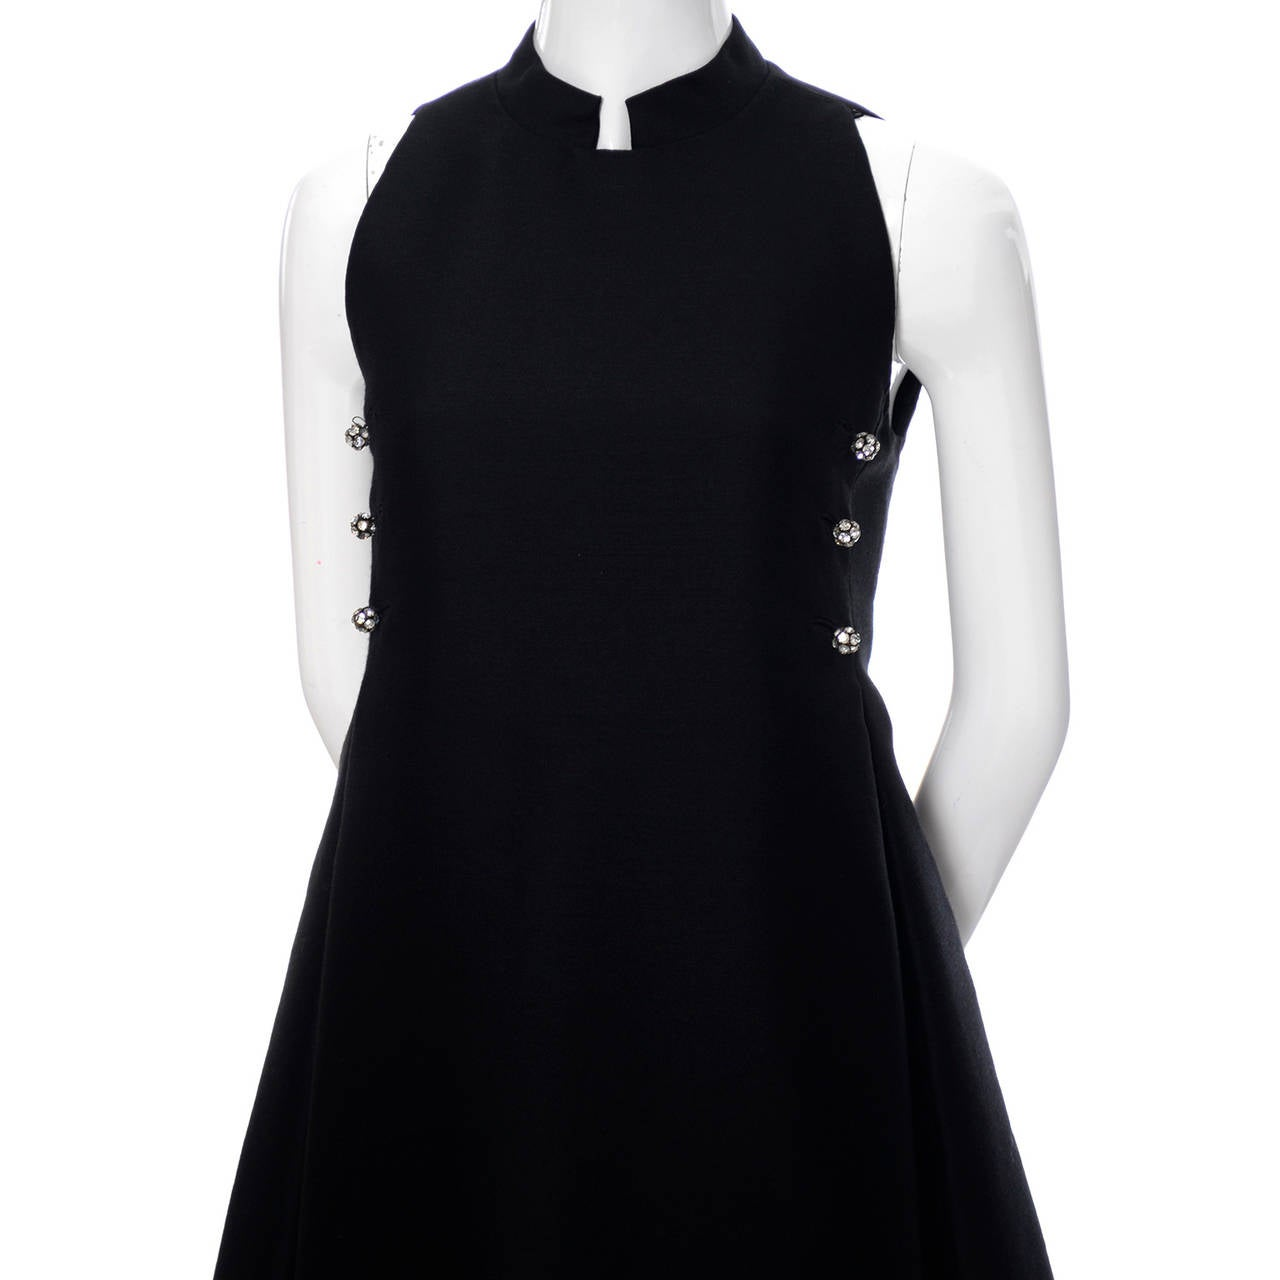 Geoffrey Beene 1960s Vintage Midi Dress Mod Black Cocktail Baby Doll Rhinestones For Sale 2